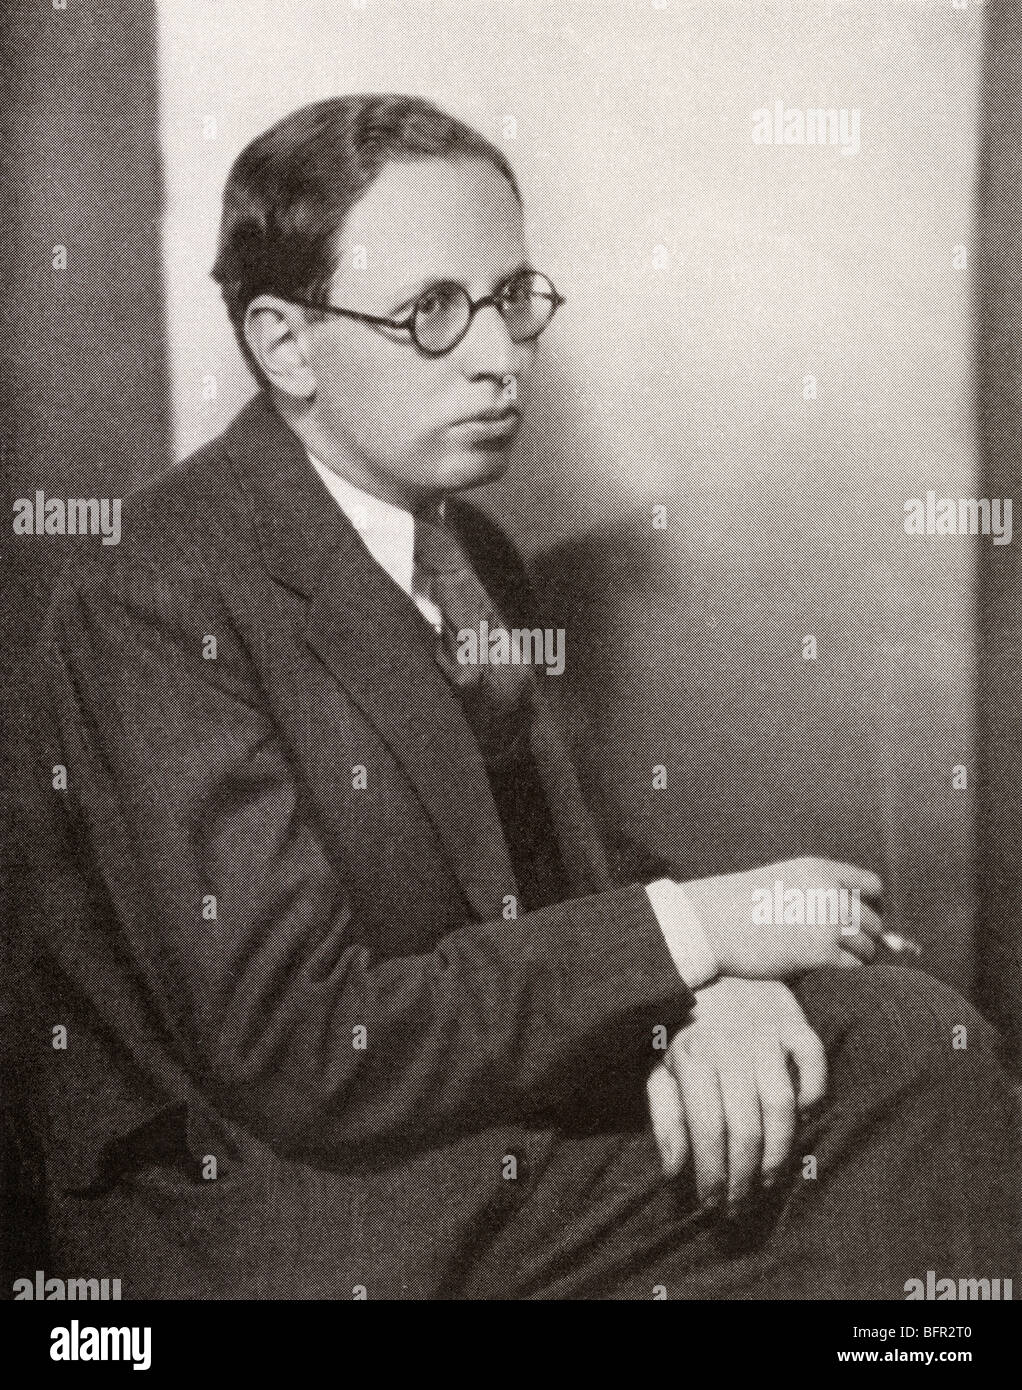 Elmer Rice, 1892 to 1967. American playwright. - Stock Image